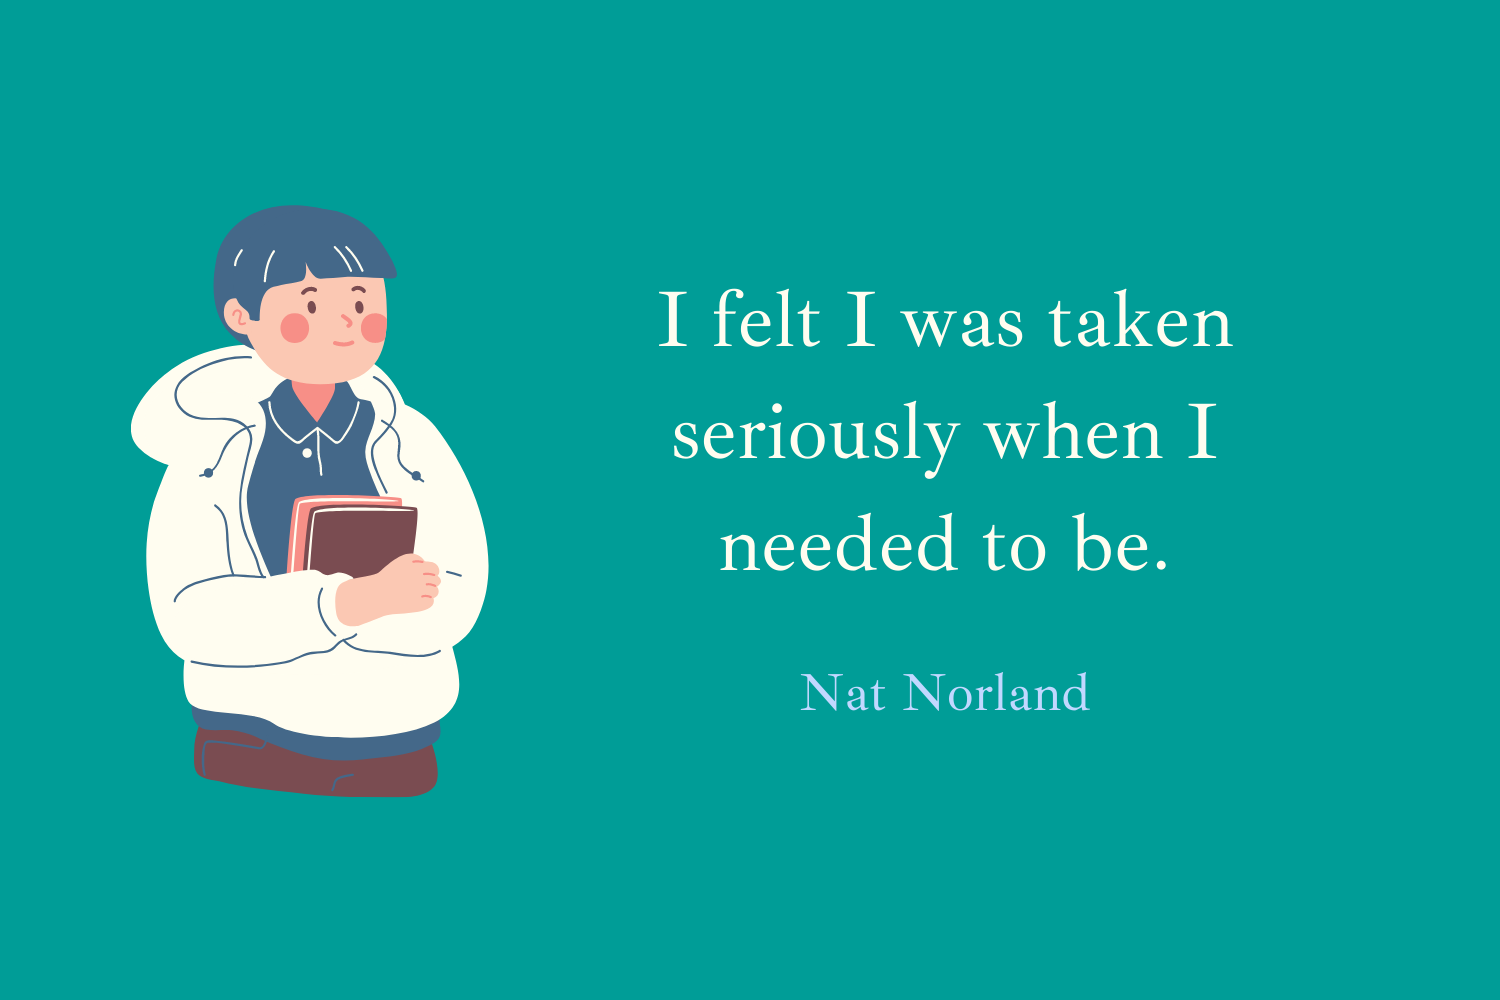 I felt I was taken seriously when I needed to be. Nat Norland